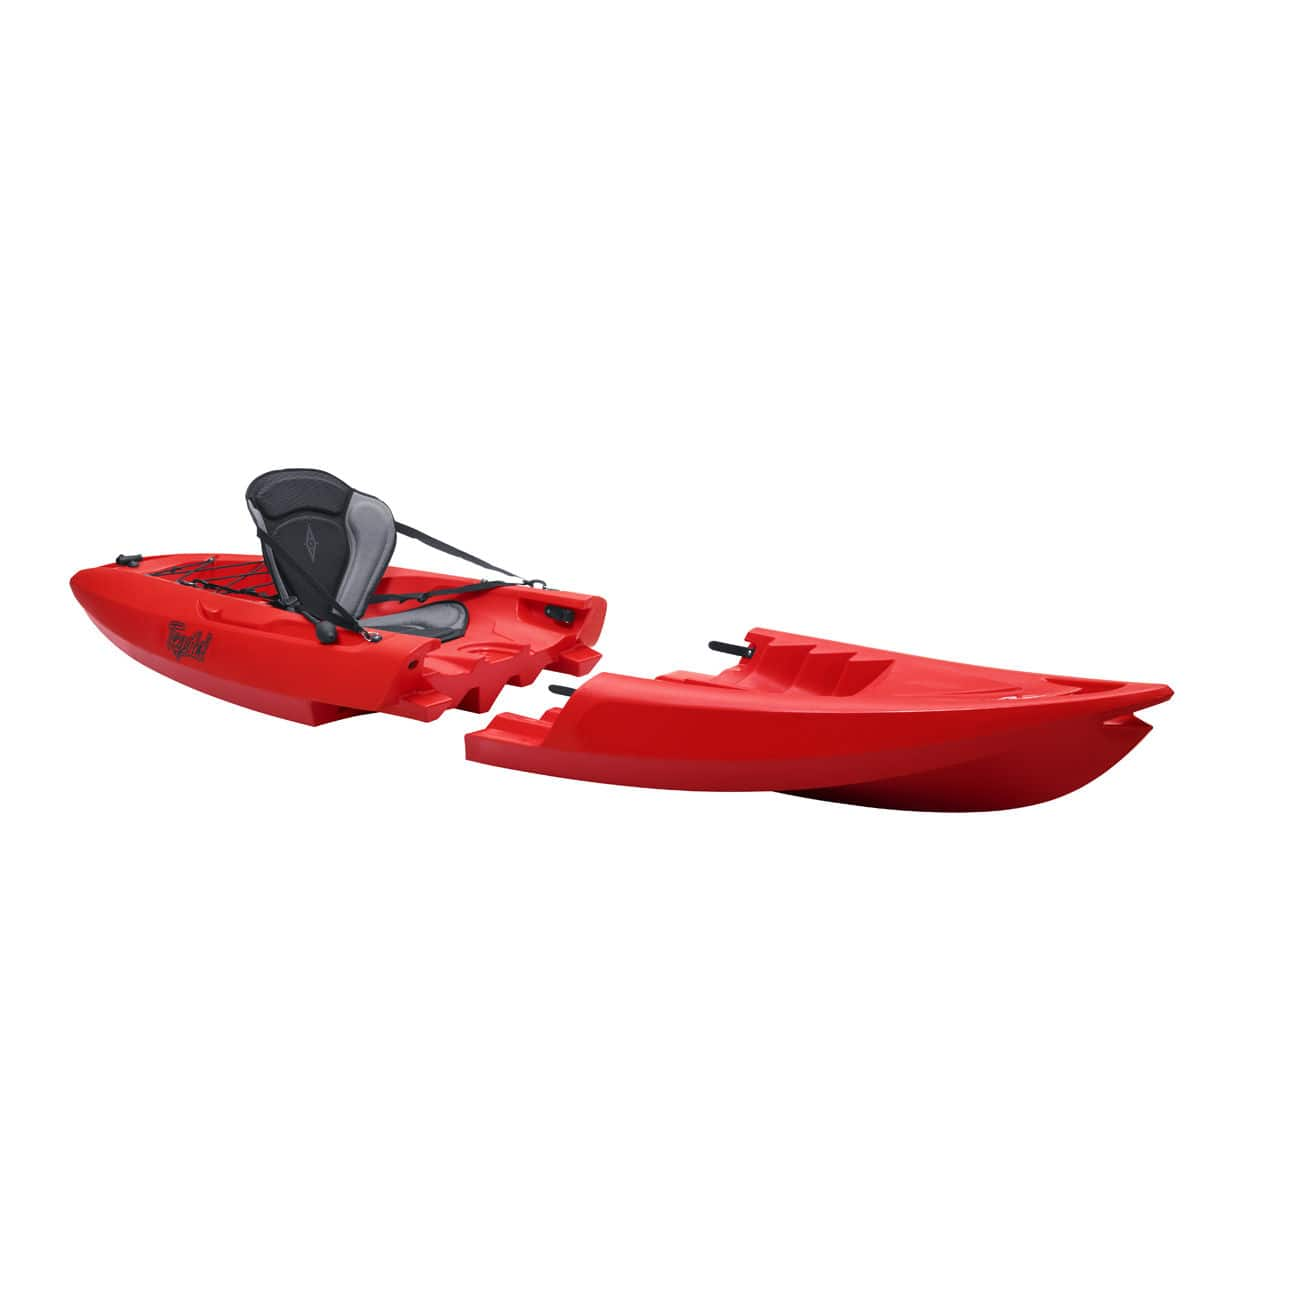 Sit-on-top kayak / modular / recreational / solo TEQUILA! GTX SOLO Point 65  Sweden AB